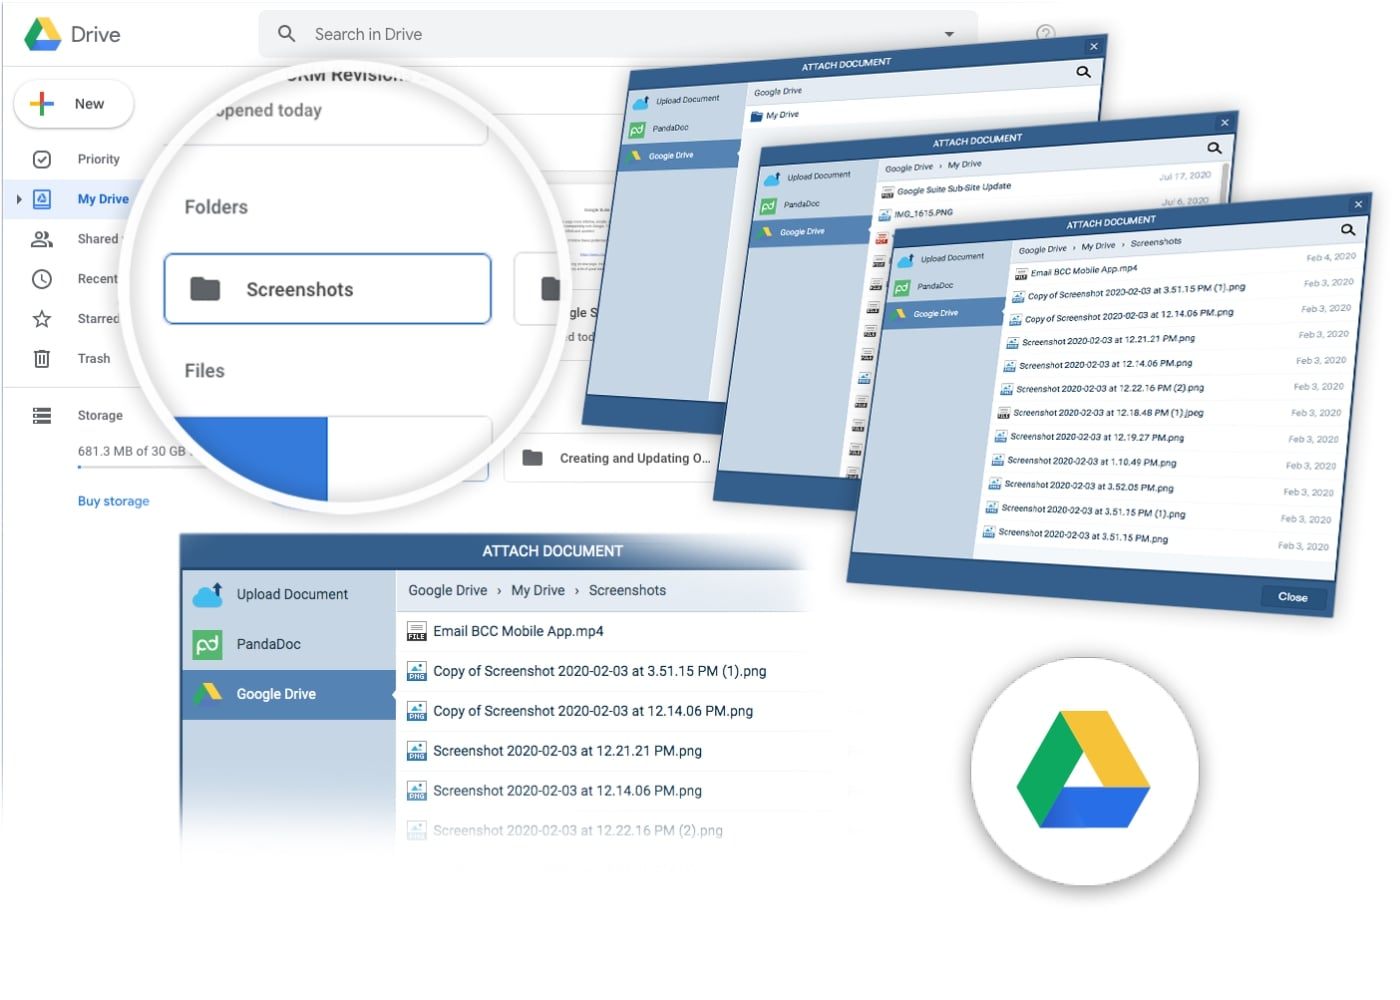 Google Drive integration with Pipeliner CRM